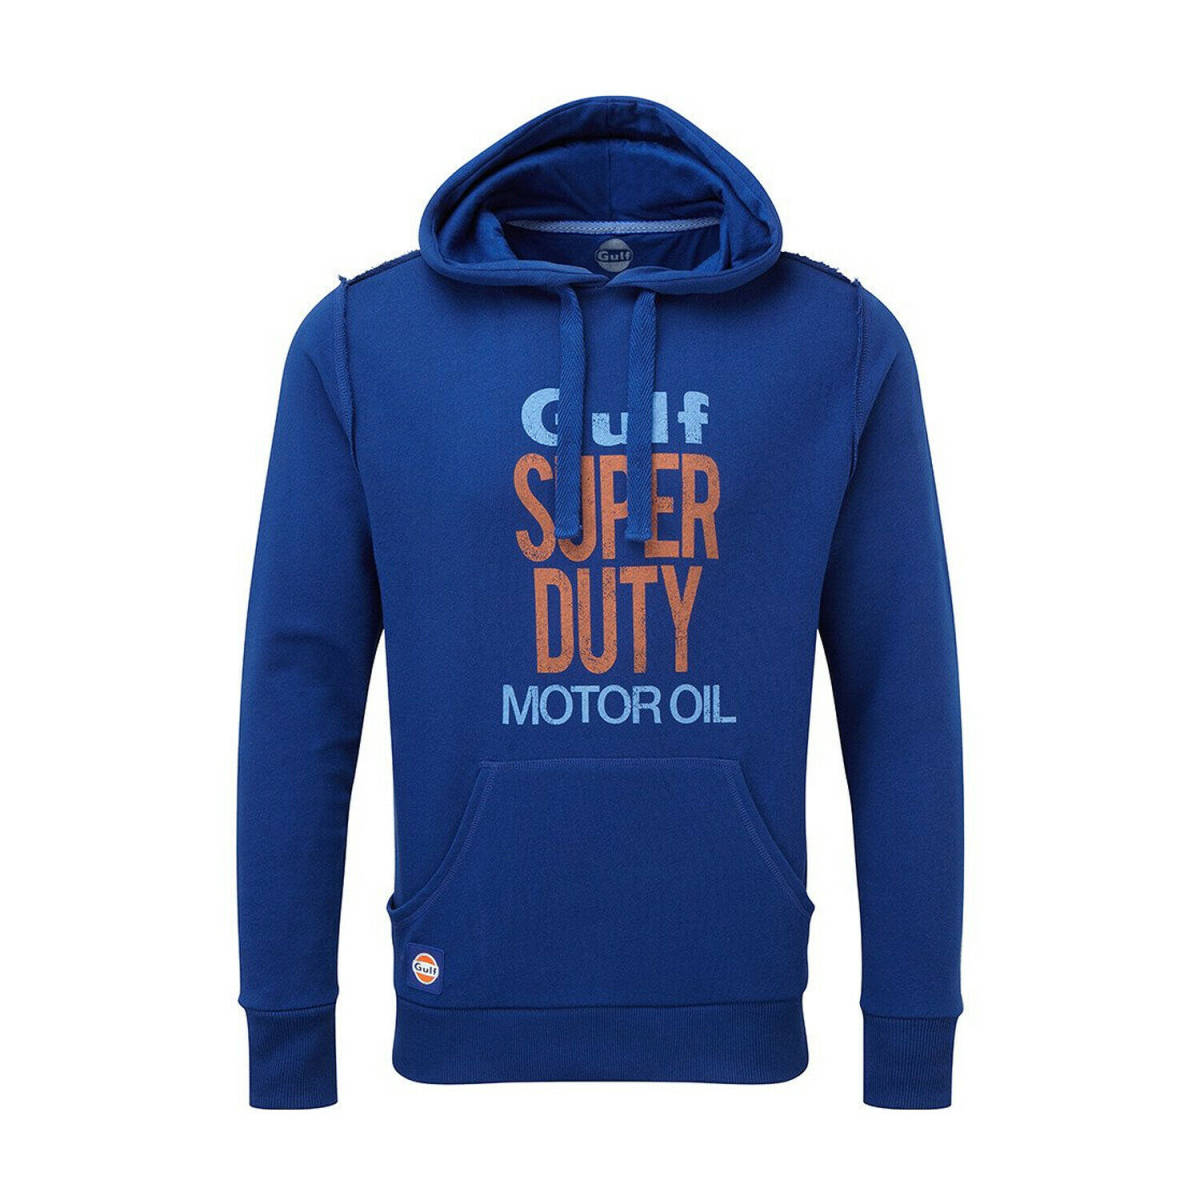 ★送料無料★ Gulf Racing Motorsport Heritage Hoody Super Duty Motor Oil ガルフ プルオーバー パーカー